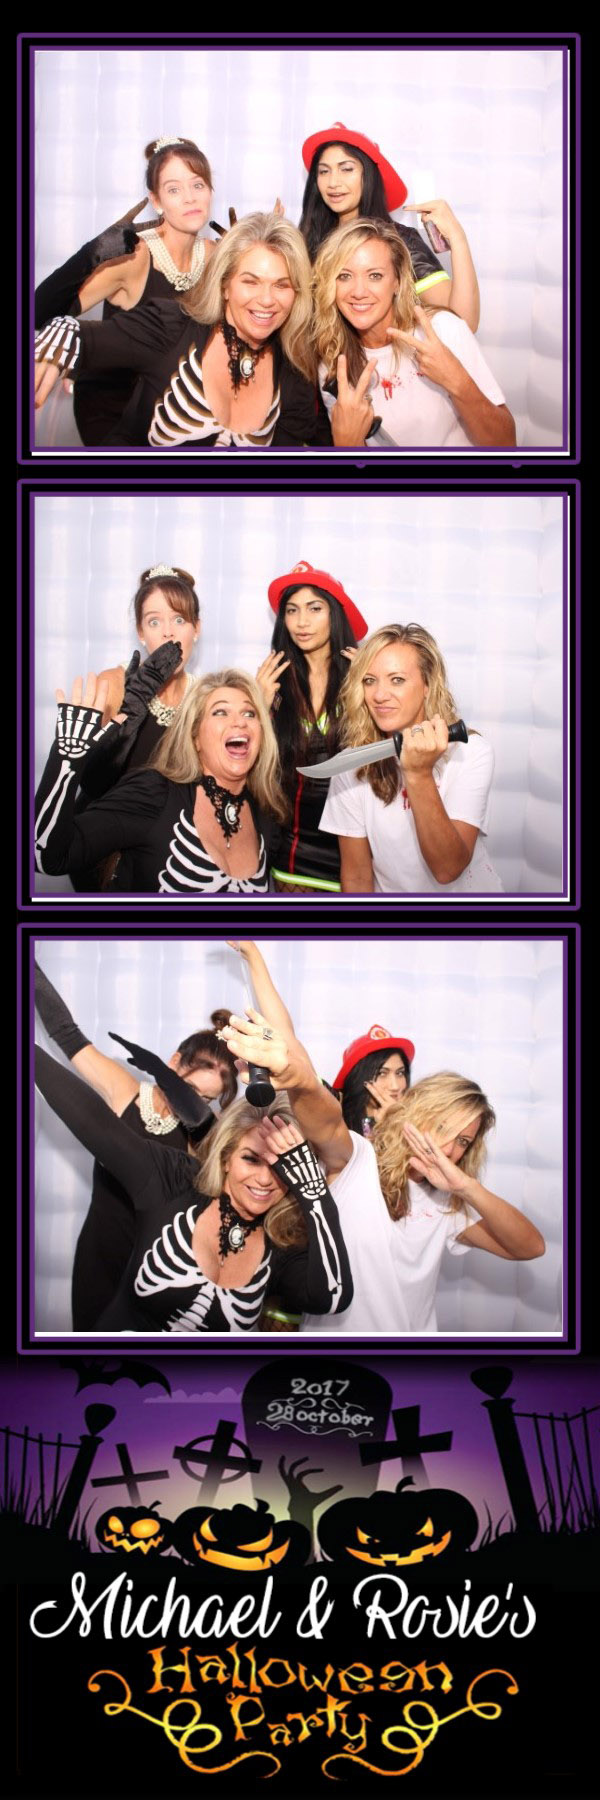 DNORWOOD PHOTO BOOTH (40)